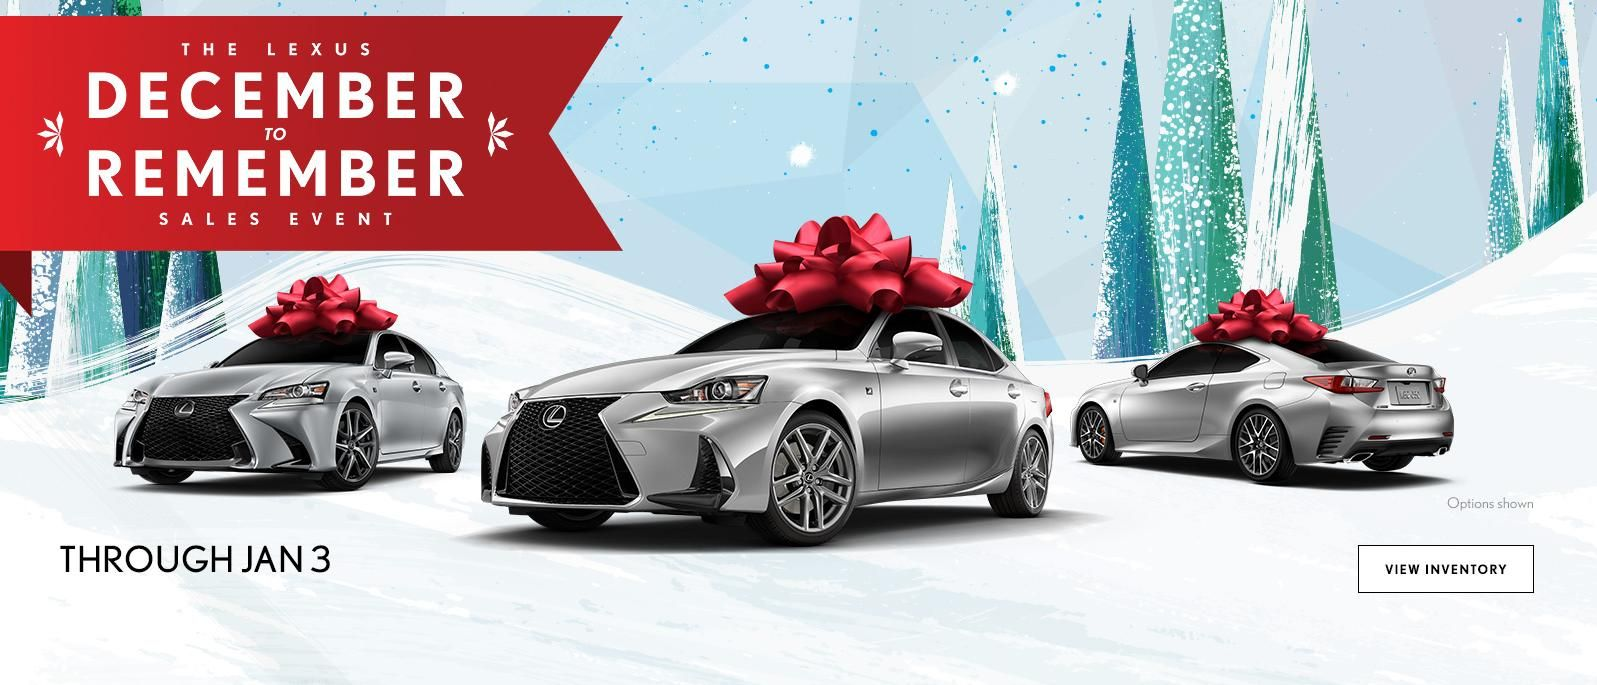 The Lexus December To Remember Sales Event. For A Limited Time.